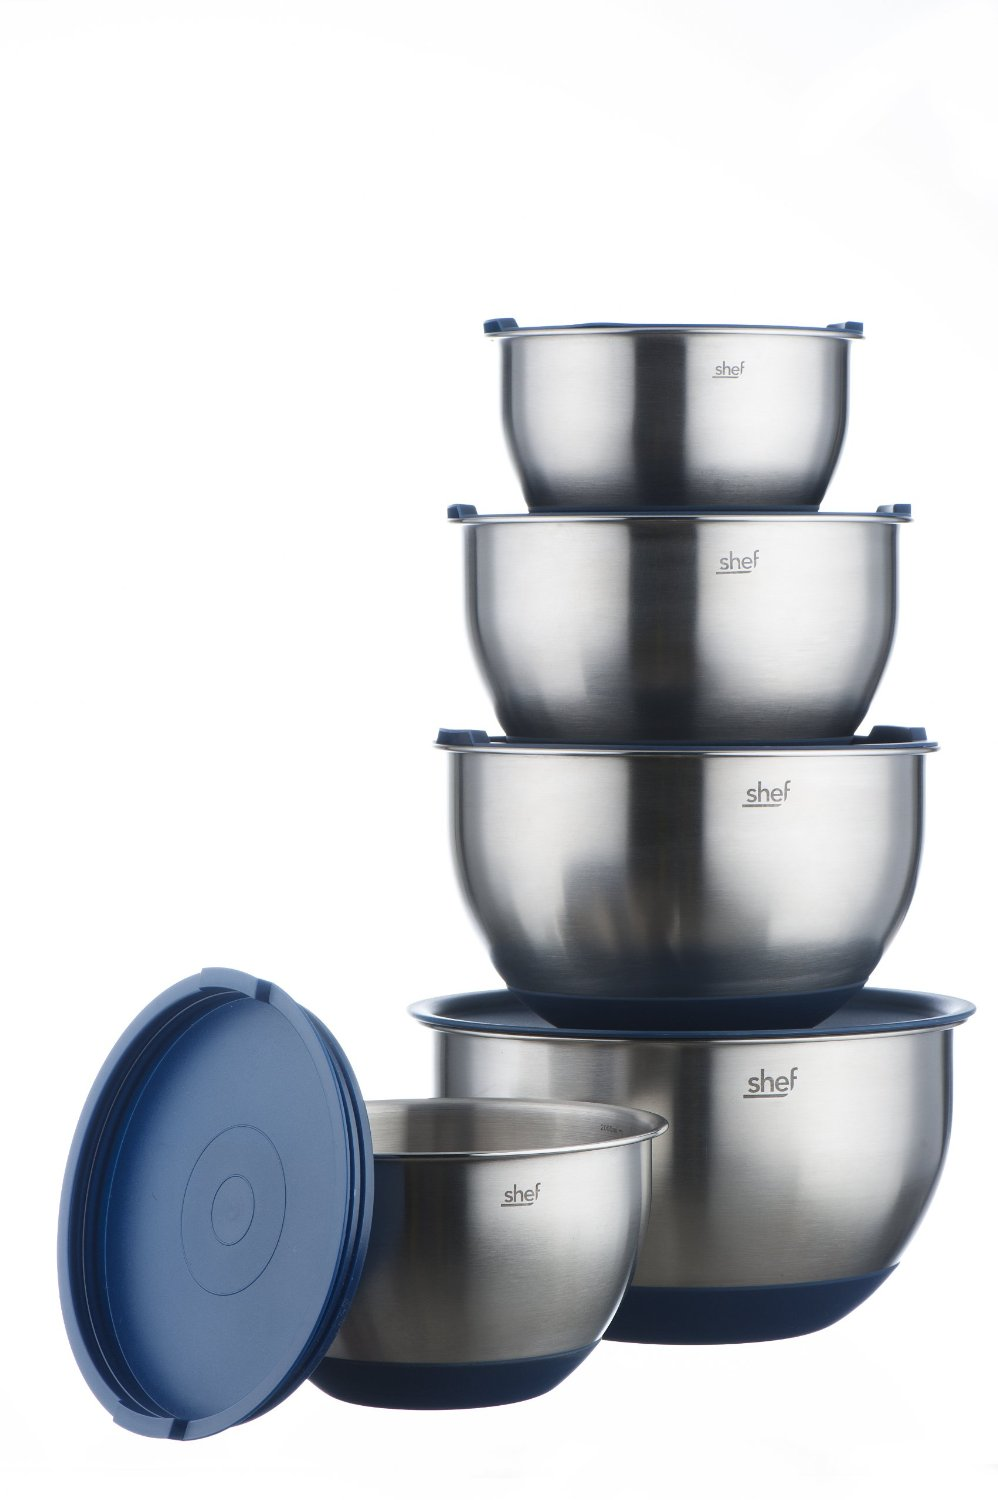 vonshef stainless steel mixing bowl set with lids 5 piece non slip baking bowls ebay. Black Bedroom Furniture Sets. Home Design Ideas